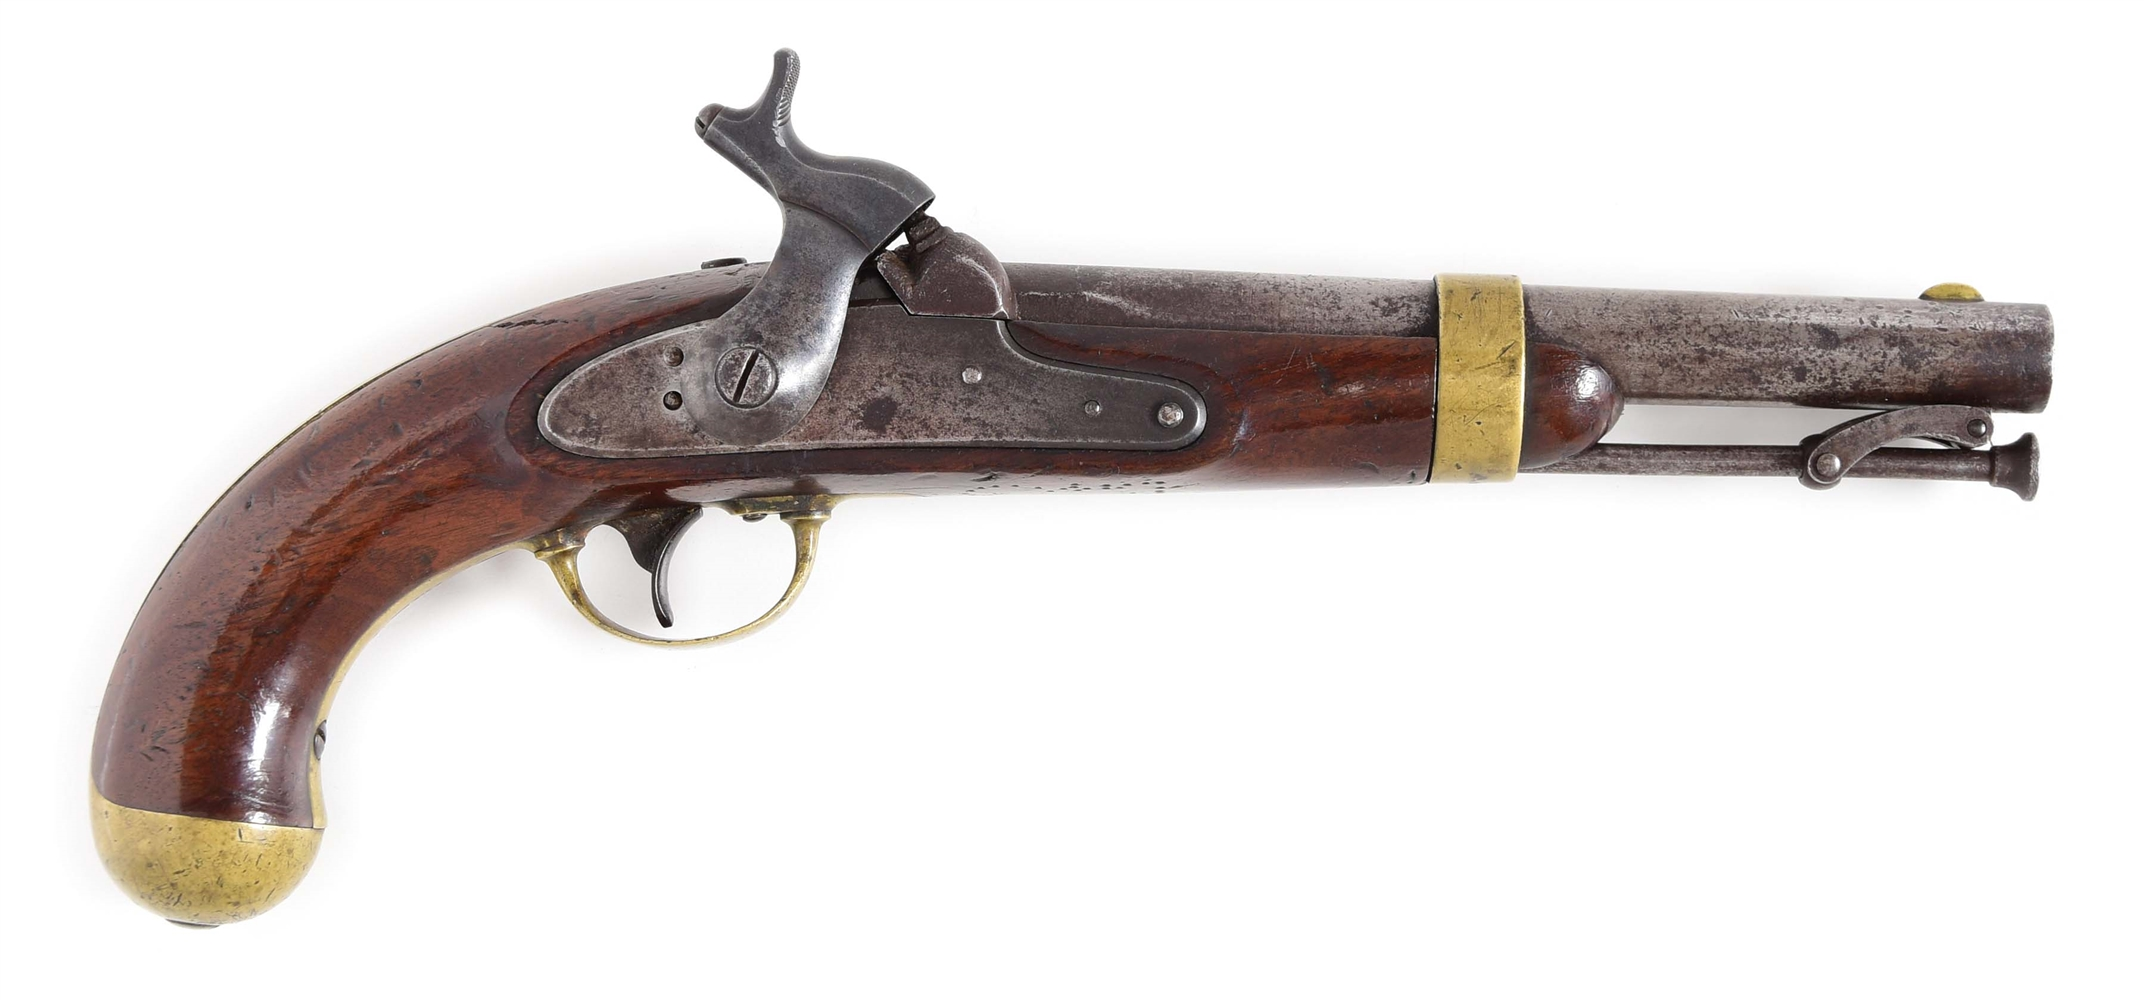 (A) RARE US SINGLE SHOT 1842 MARTIAL PISTOL WITH EXPERIMENTAL SELF-PRIMING HAMMER.